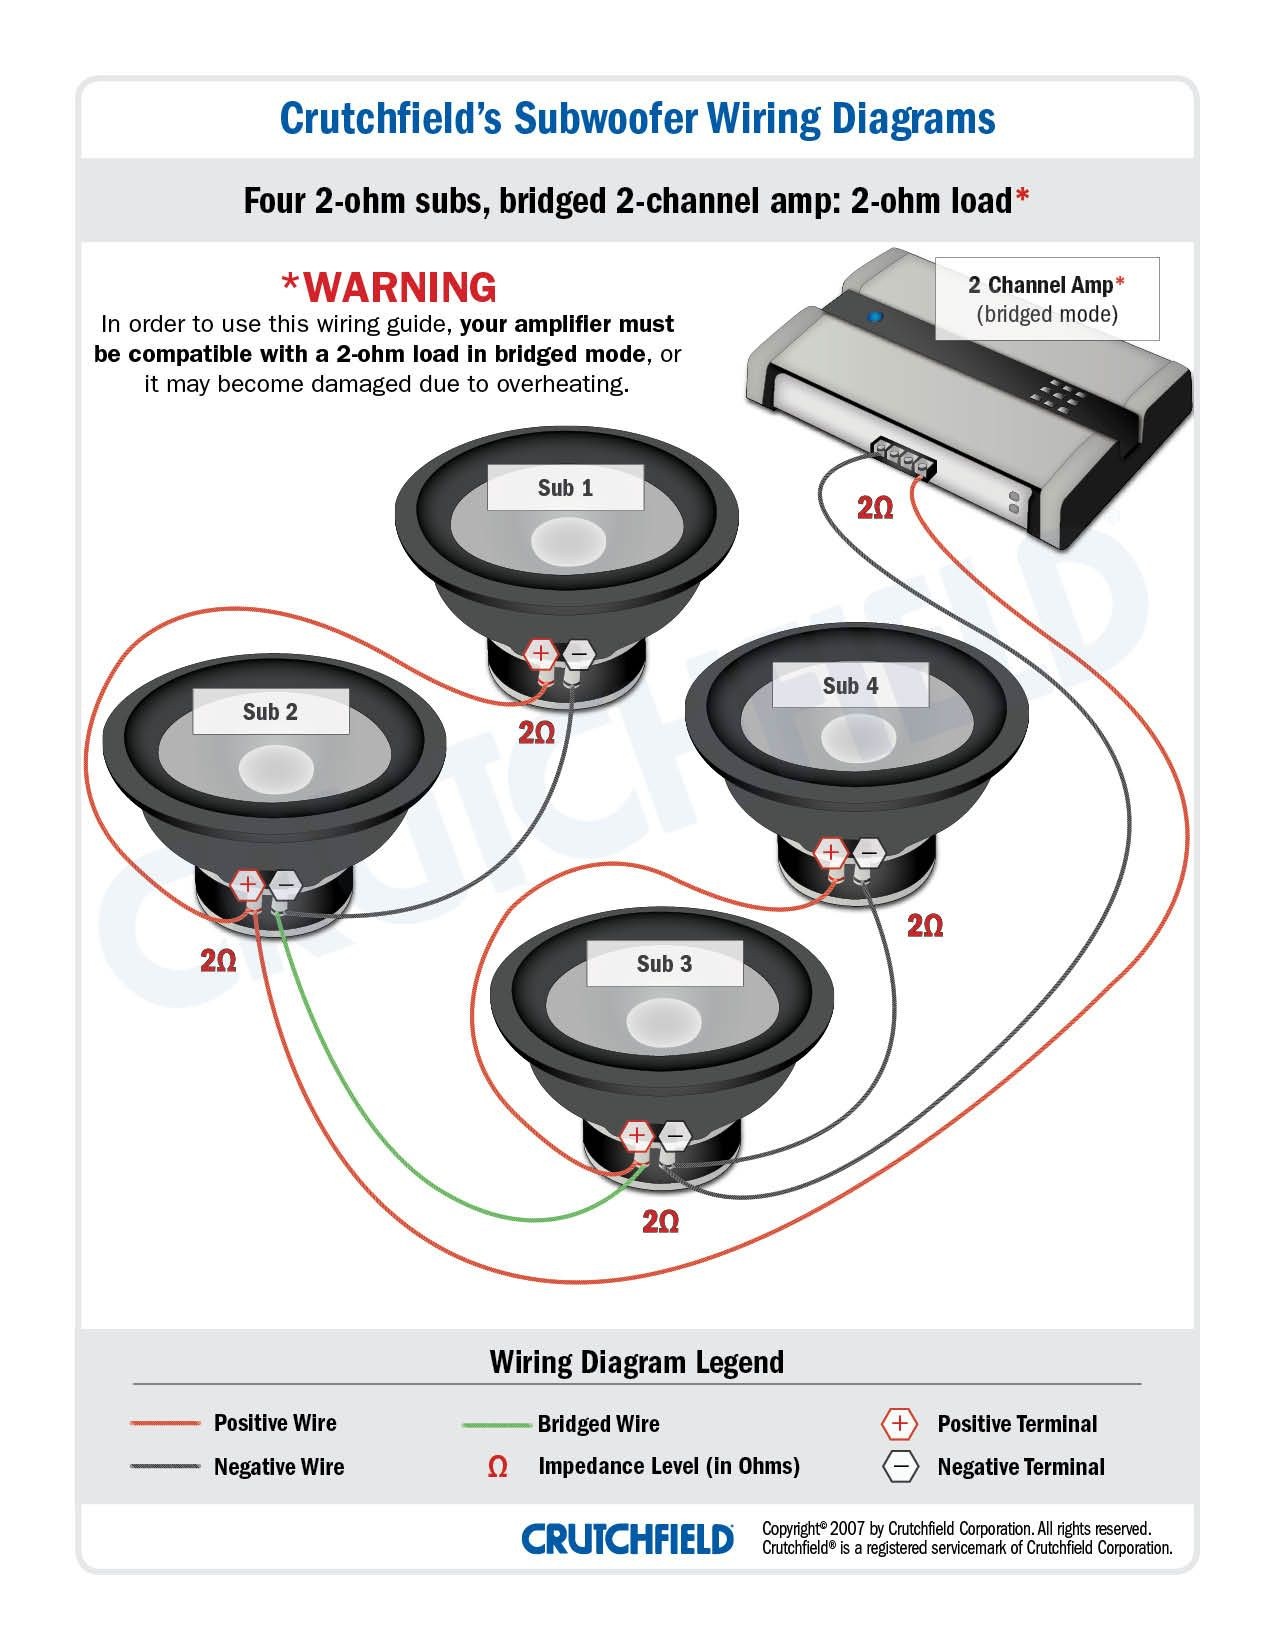 Top 10 Subwoofer Wiring Diagram Free Download 4 Svc 2 Ohm 2 Ch Low - Subwoofer Wiring Diagram